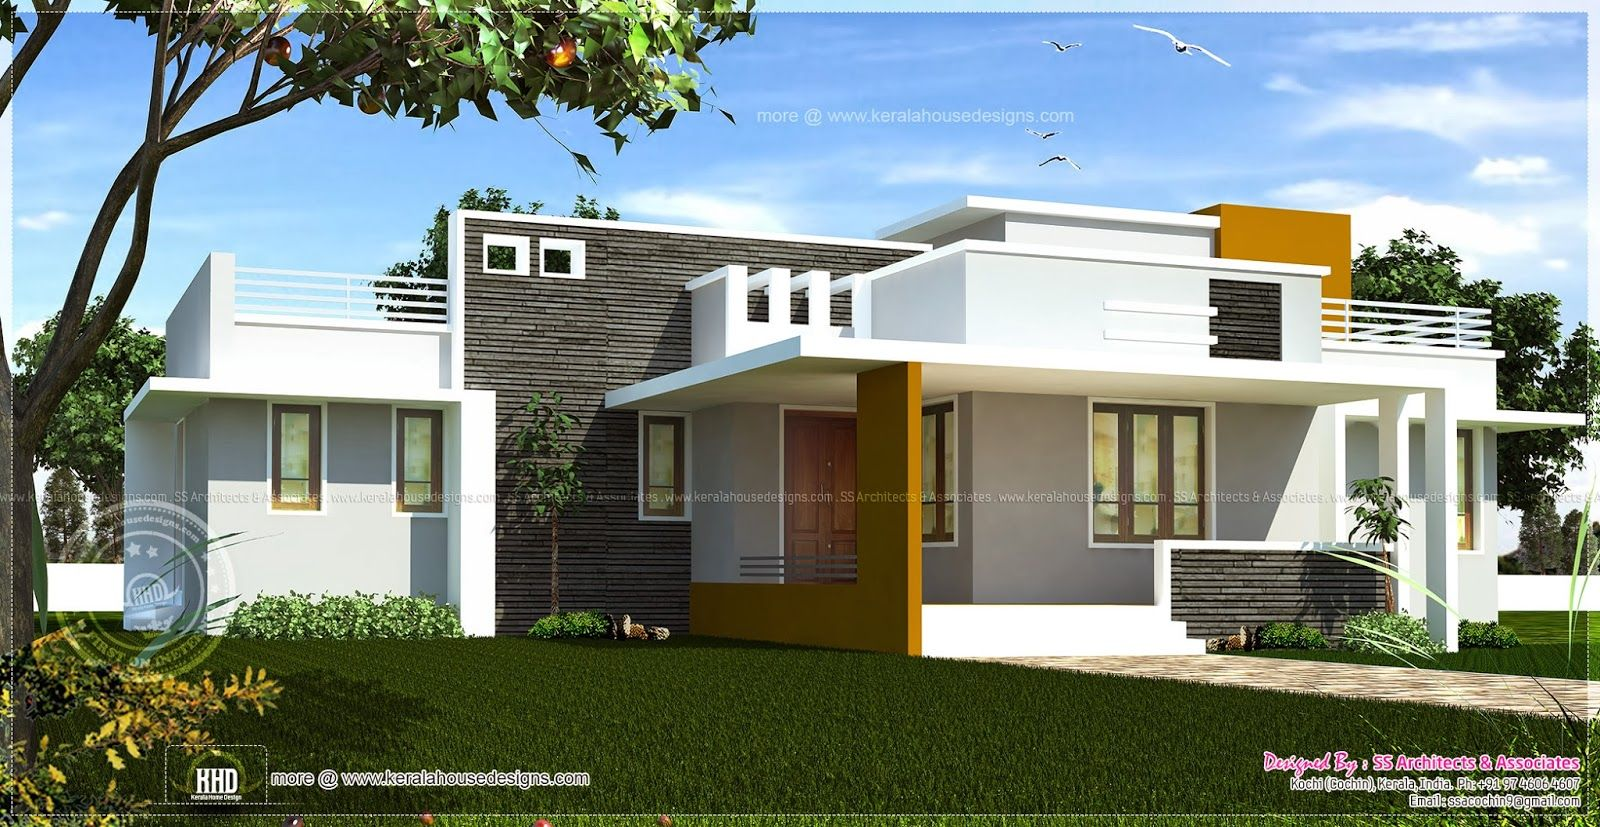 Excellent single home designs single floor contemporary for Single floor house plans kerala style